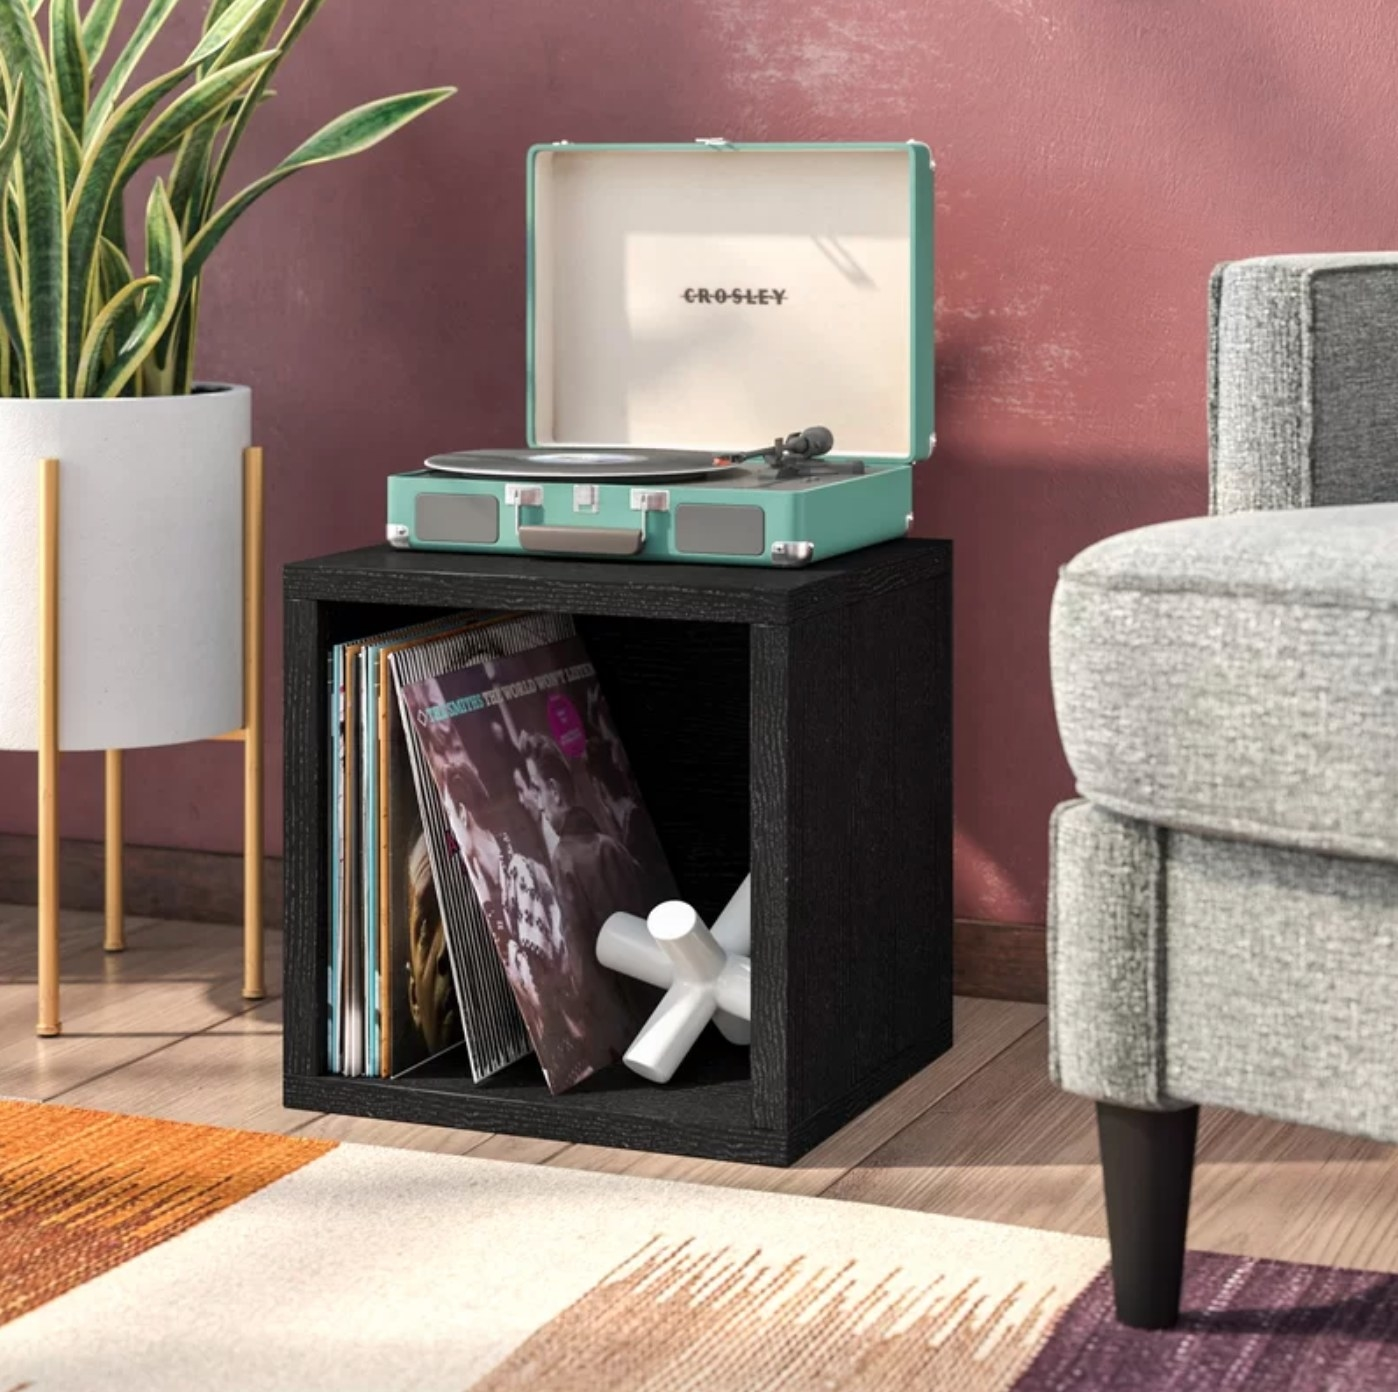 The stackable multimedia shelf in black holding a blue Crosley record player and records